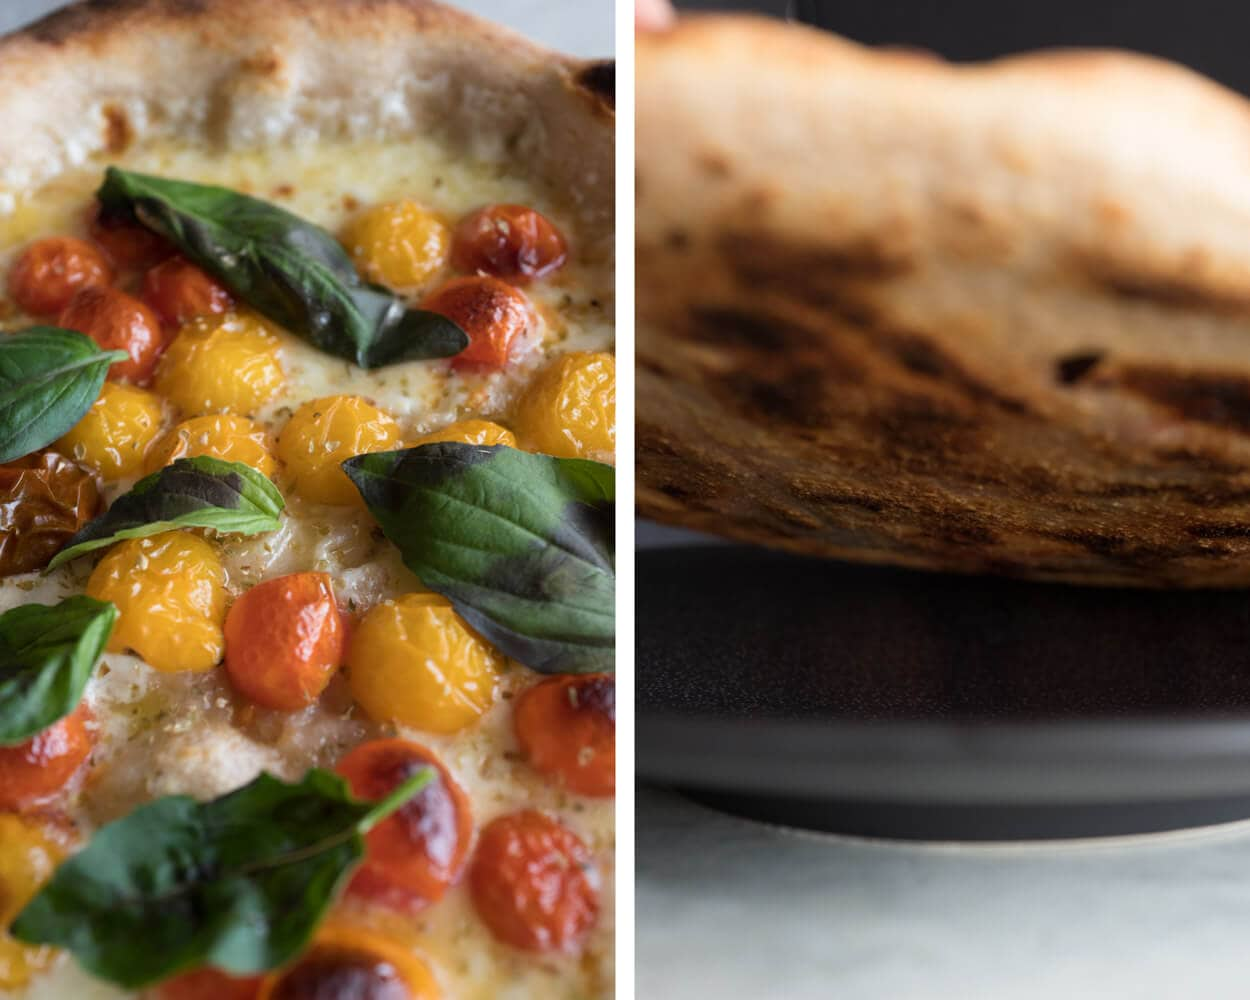 sourdough pizza toppings and bottom